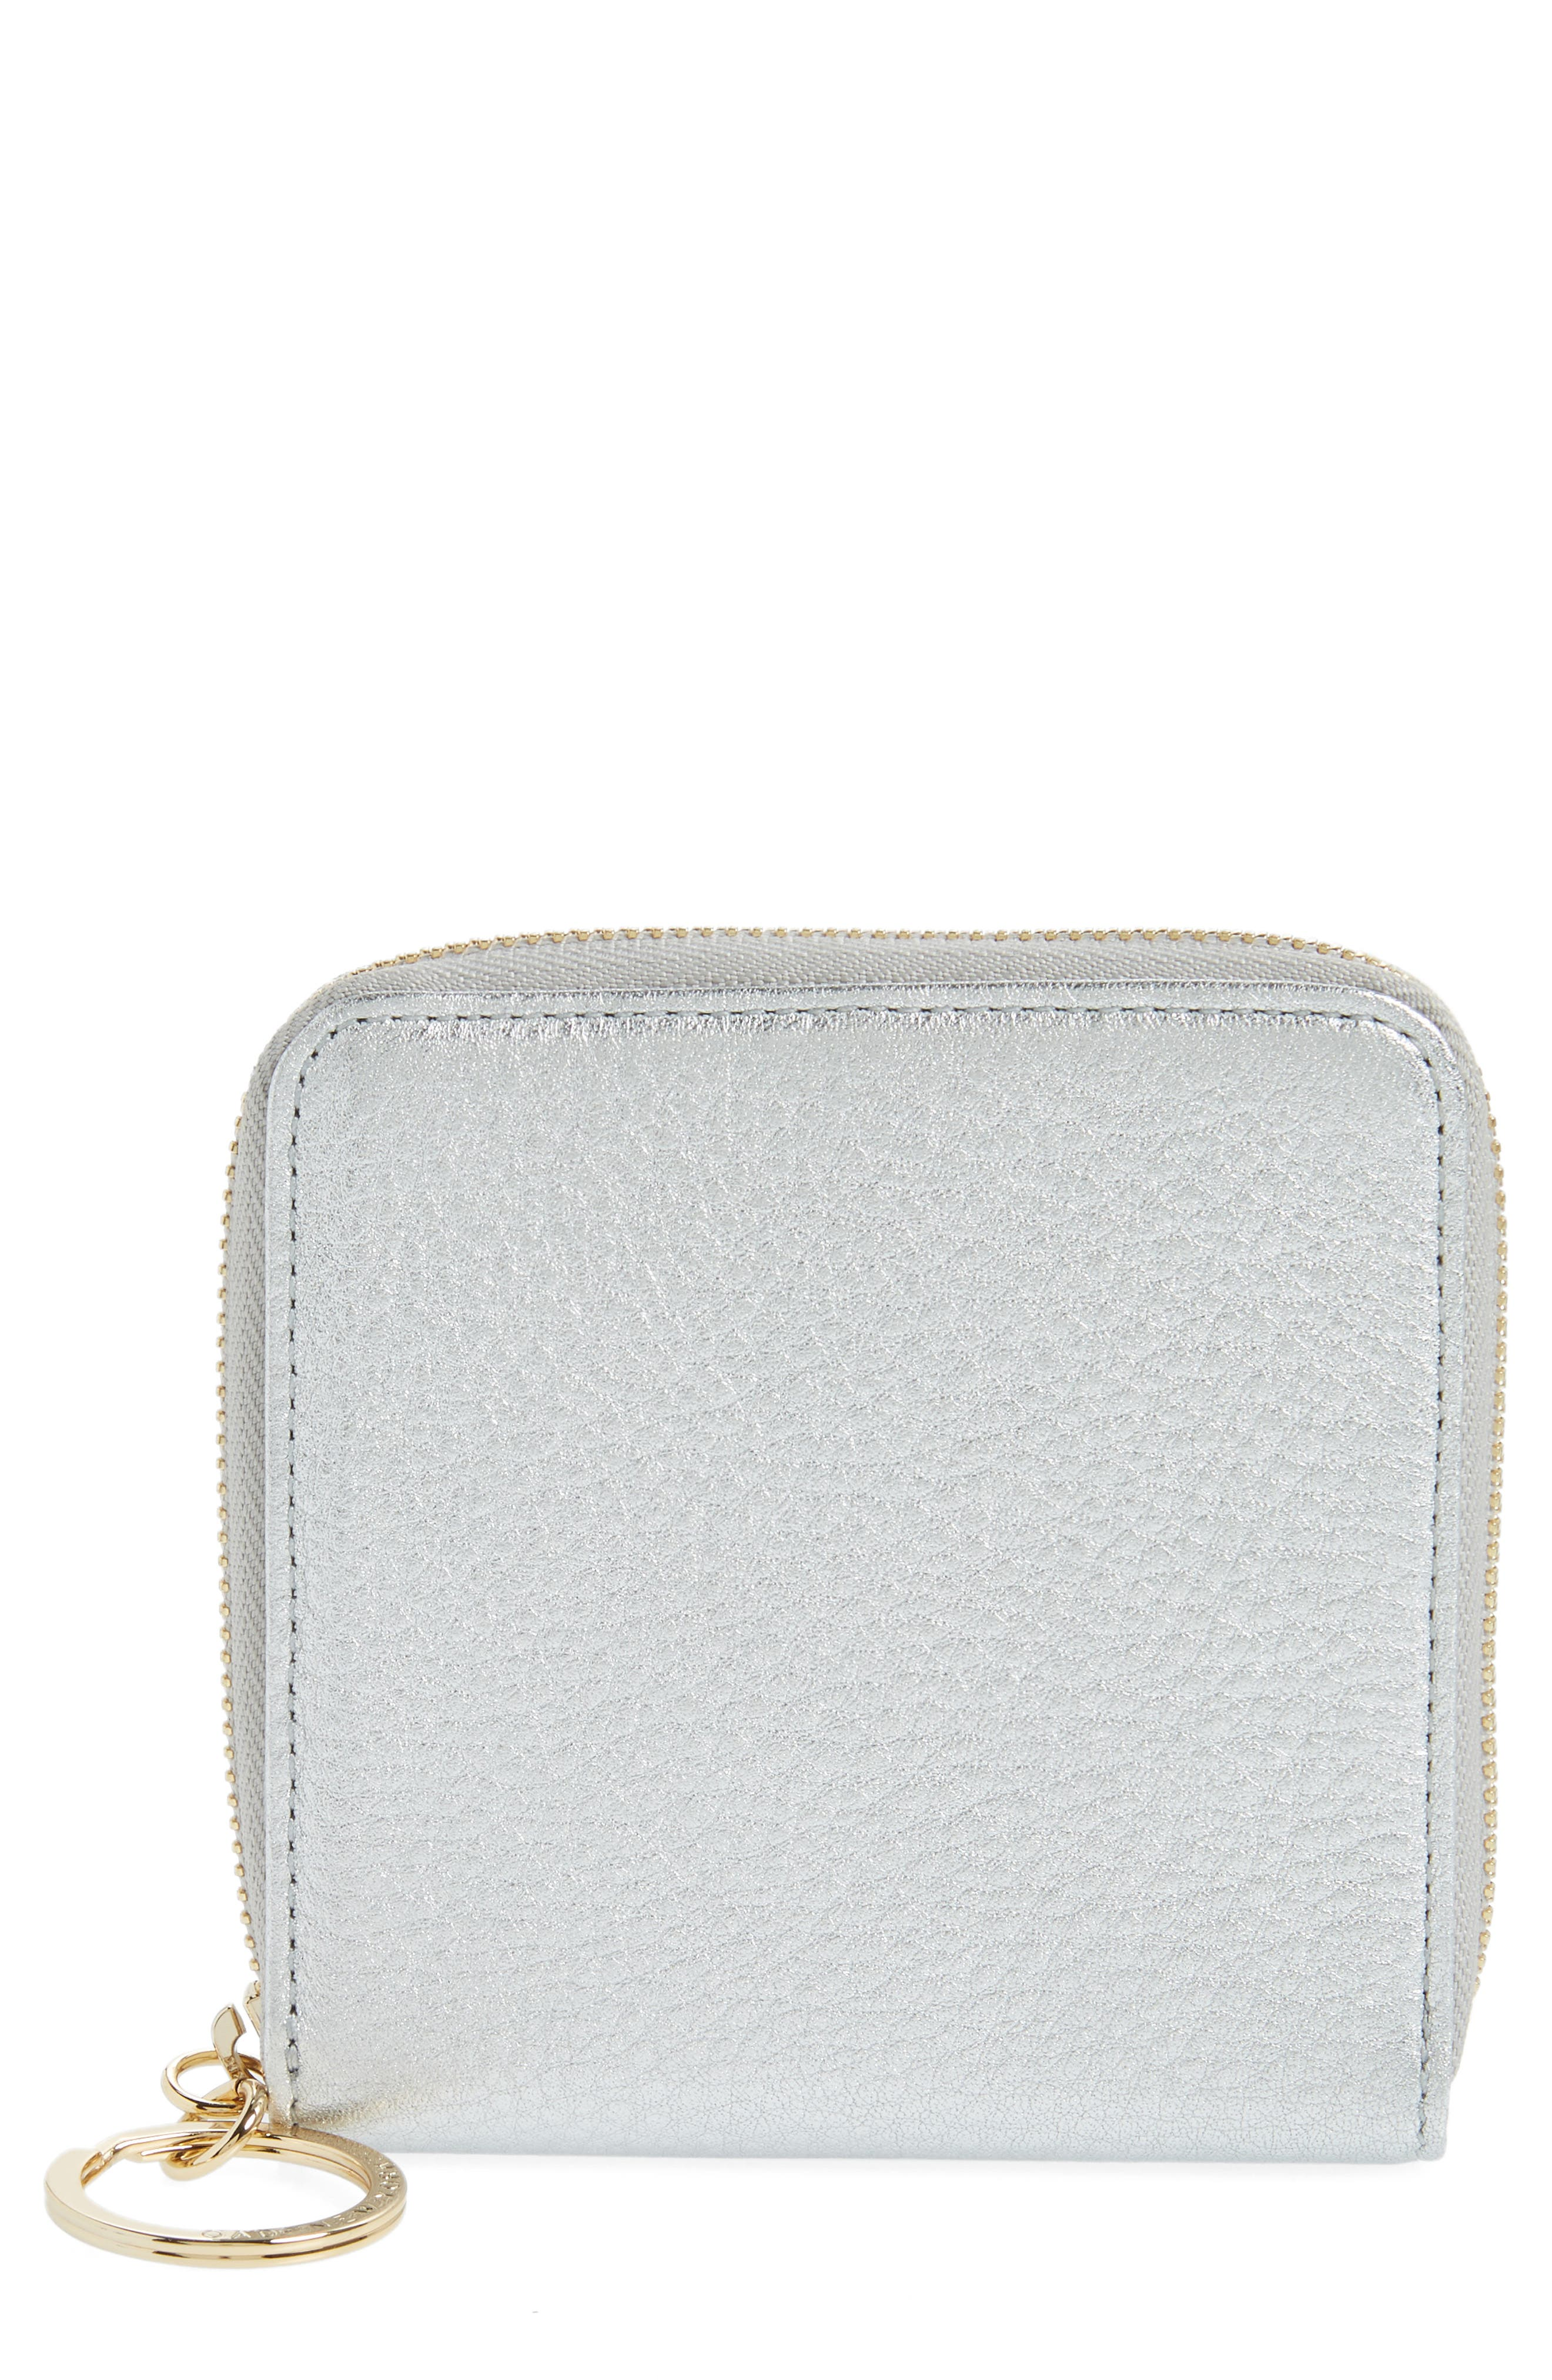 Small Zip Around Leather Wallet,                             Main thumbnail 1, color,                             SILVER